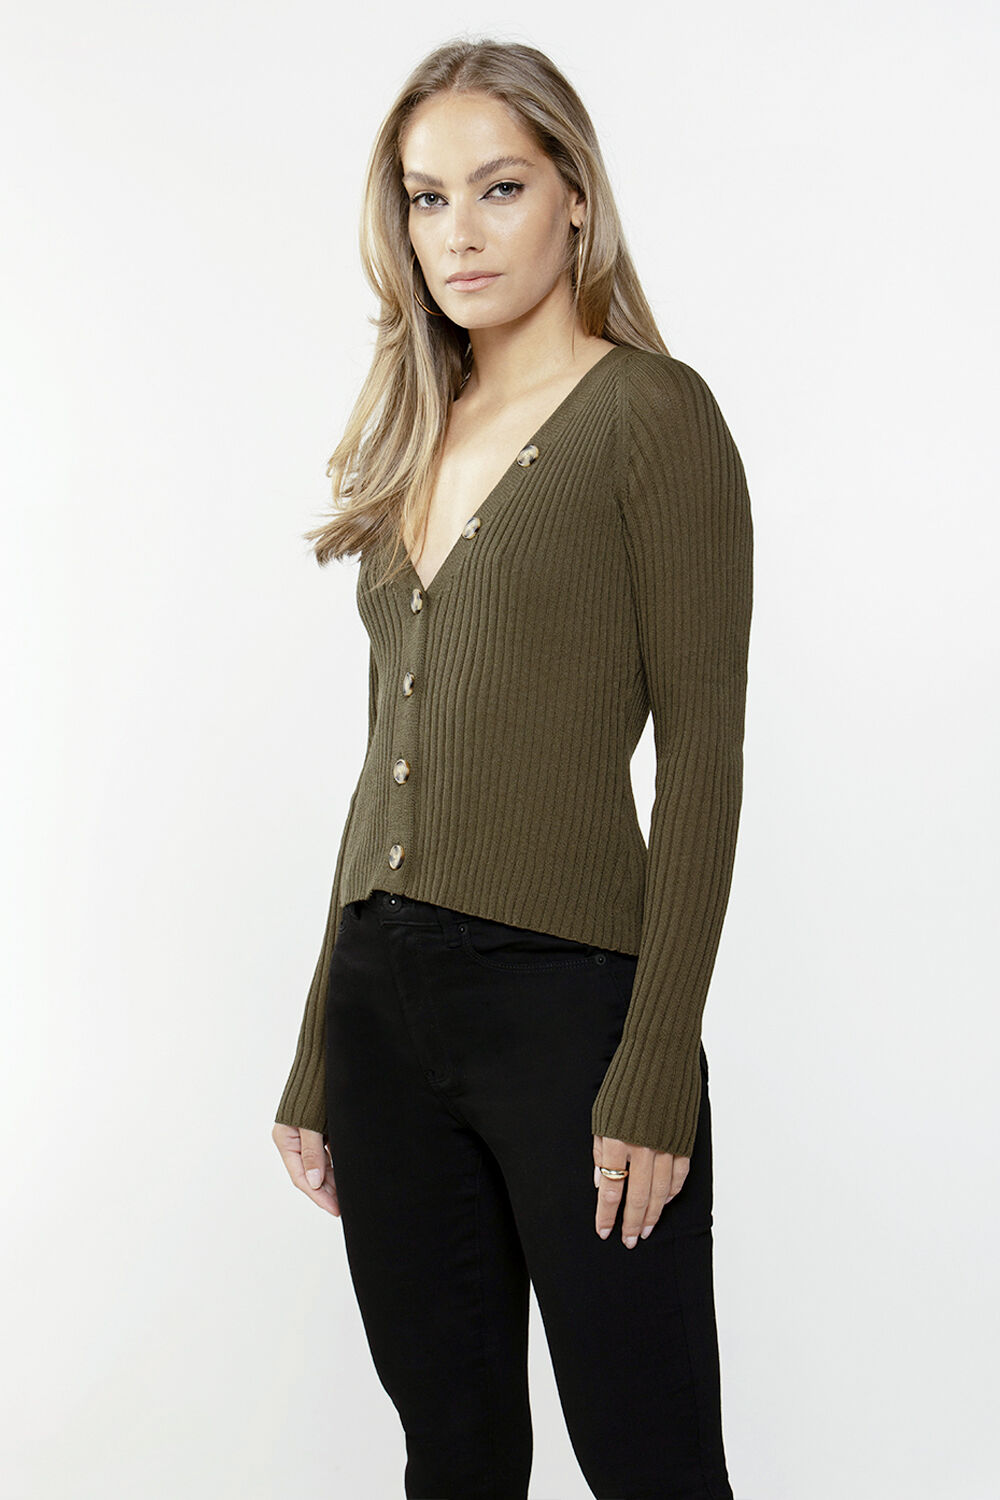 BUTTON FRONT CARDIGAN in colour IVY GREEN